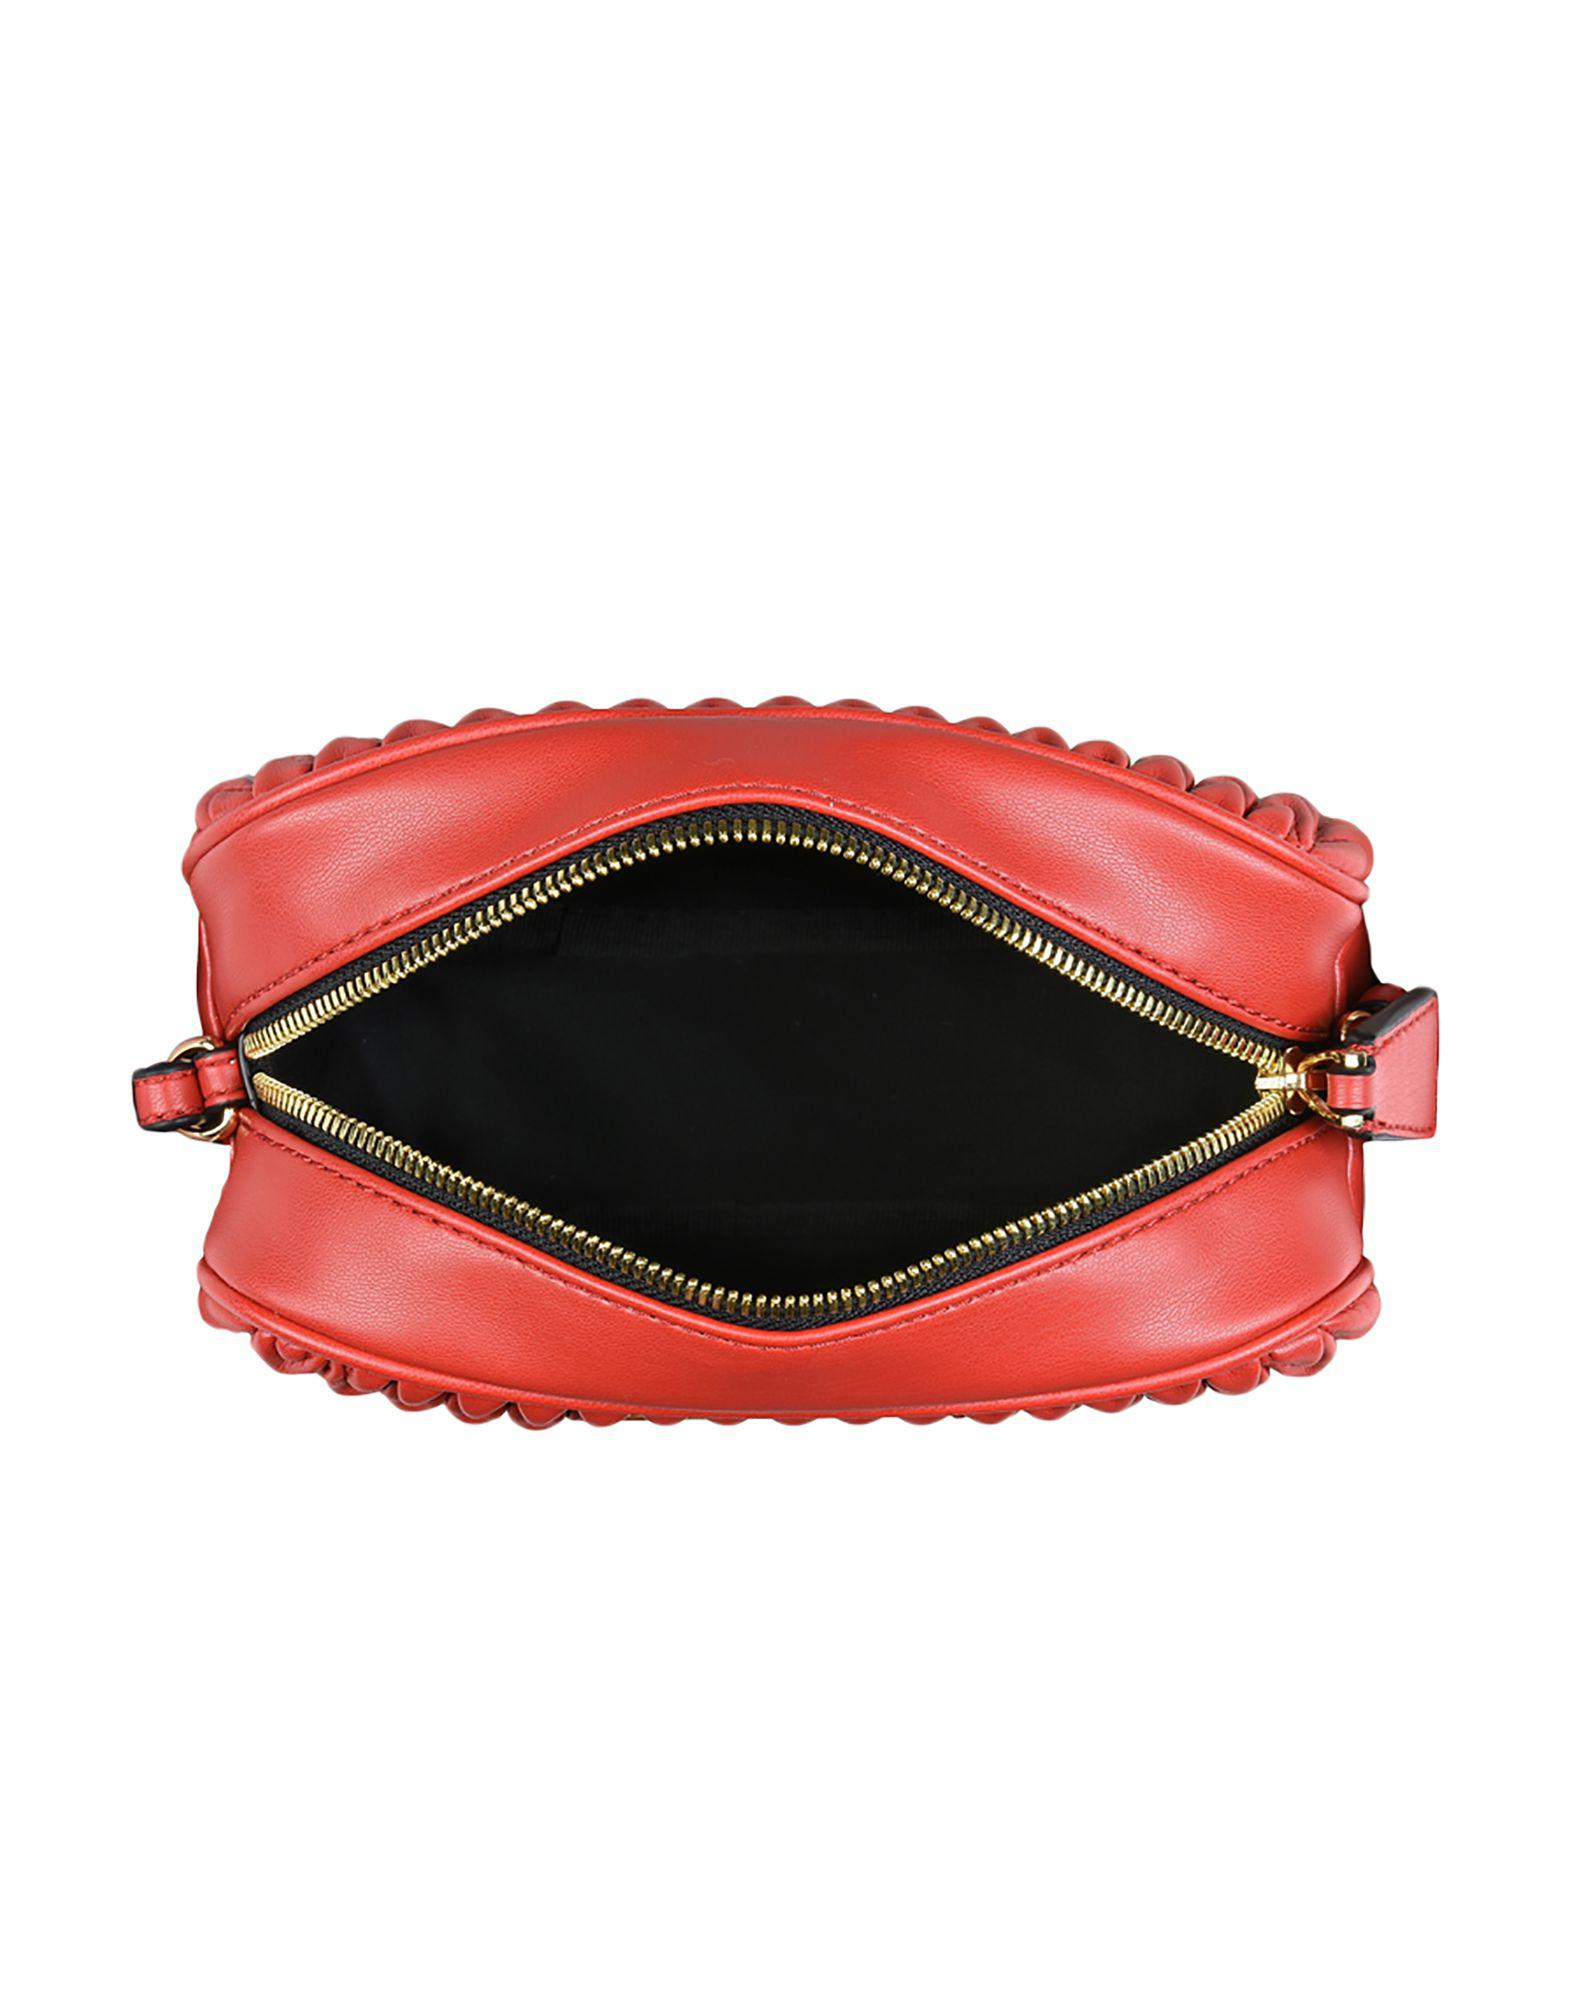 d06f92827093 Emporio Armani Cross-body Bags in Red - Lyst